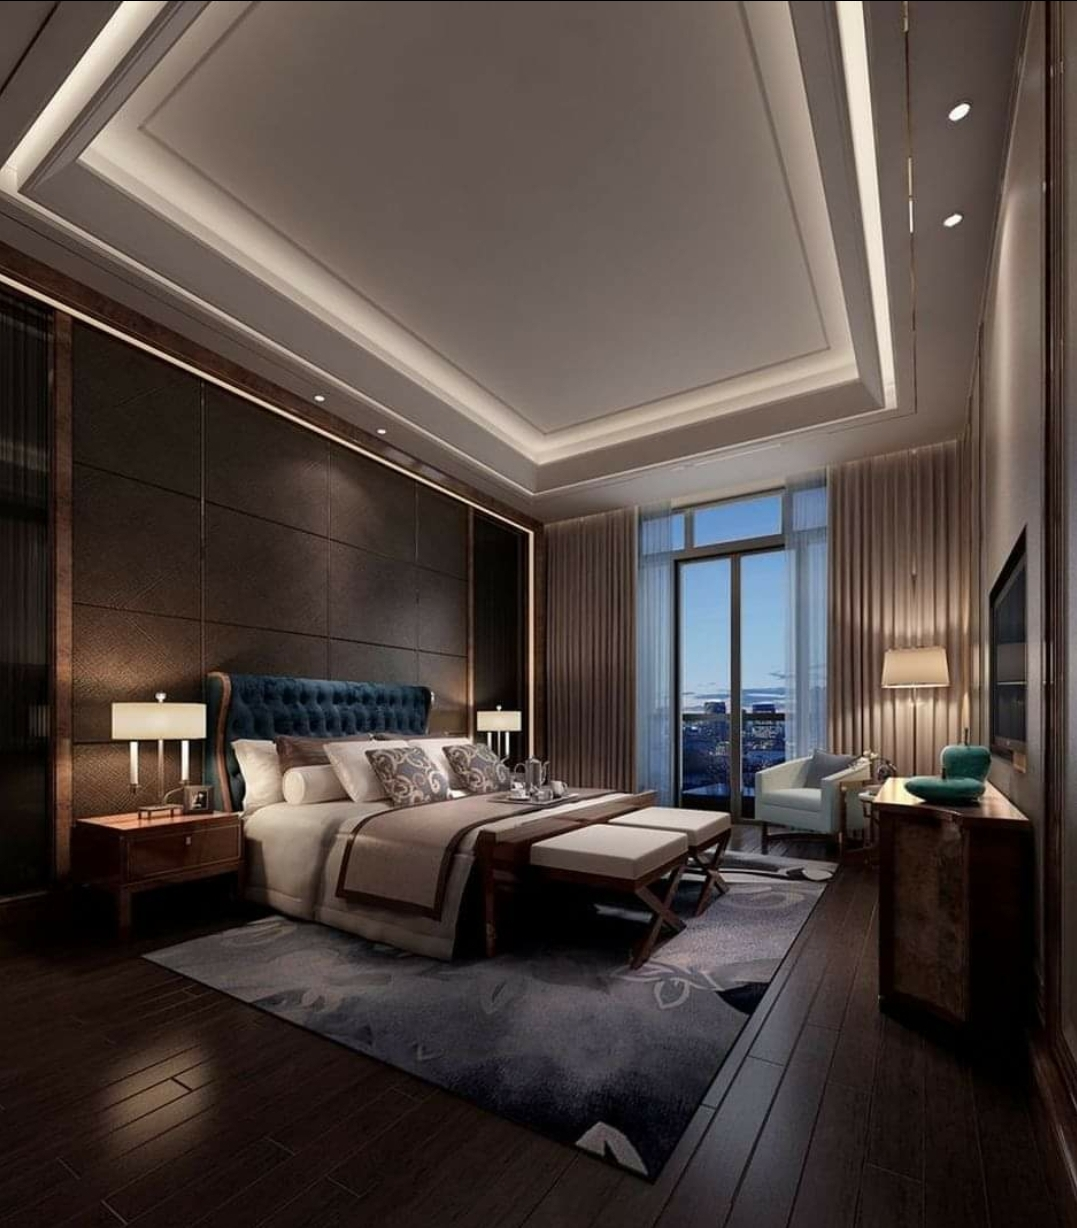 Home bedroom interior decoration,home bedroom interior design, modern bedroom interior design, ceiling design for bedroom